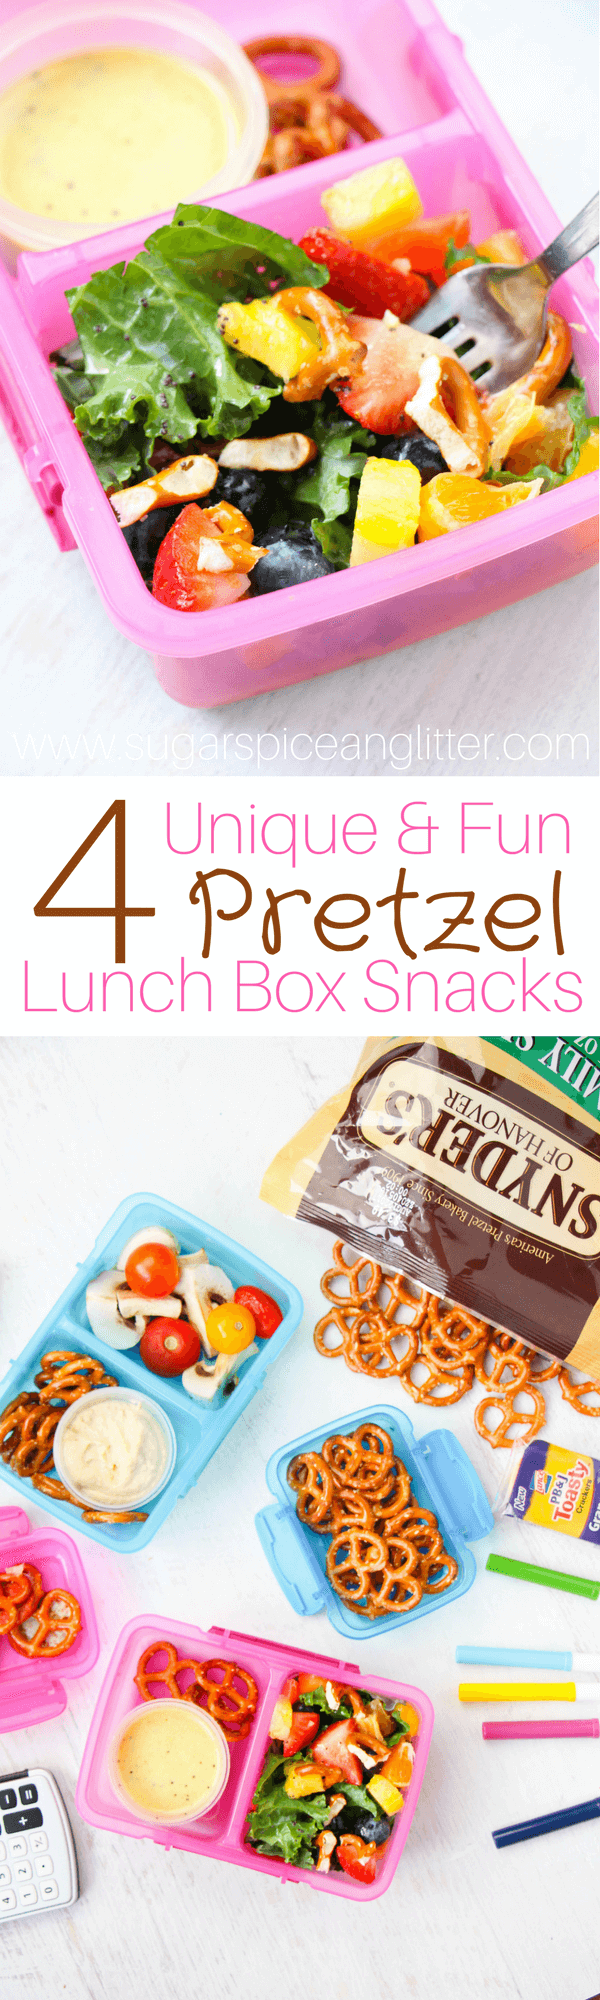 4+ Delicious Pretzel School Snacks - from a Rainbow Salad with Orange Poppyseed Dressing and Pretzels, to  a Pizza Pretzel Sandwich, all of these recipes are lunch box ideas kids can make